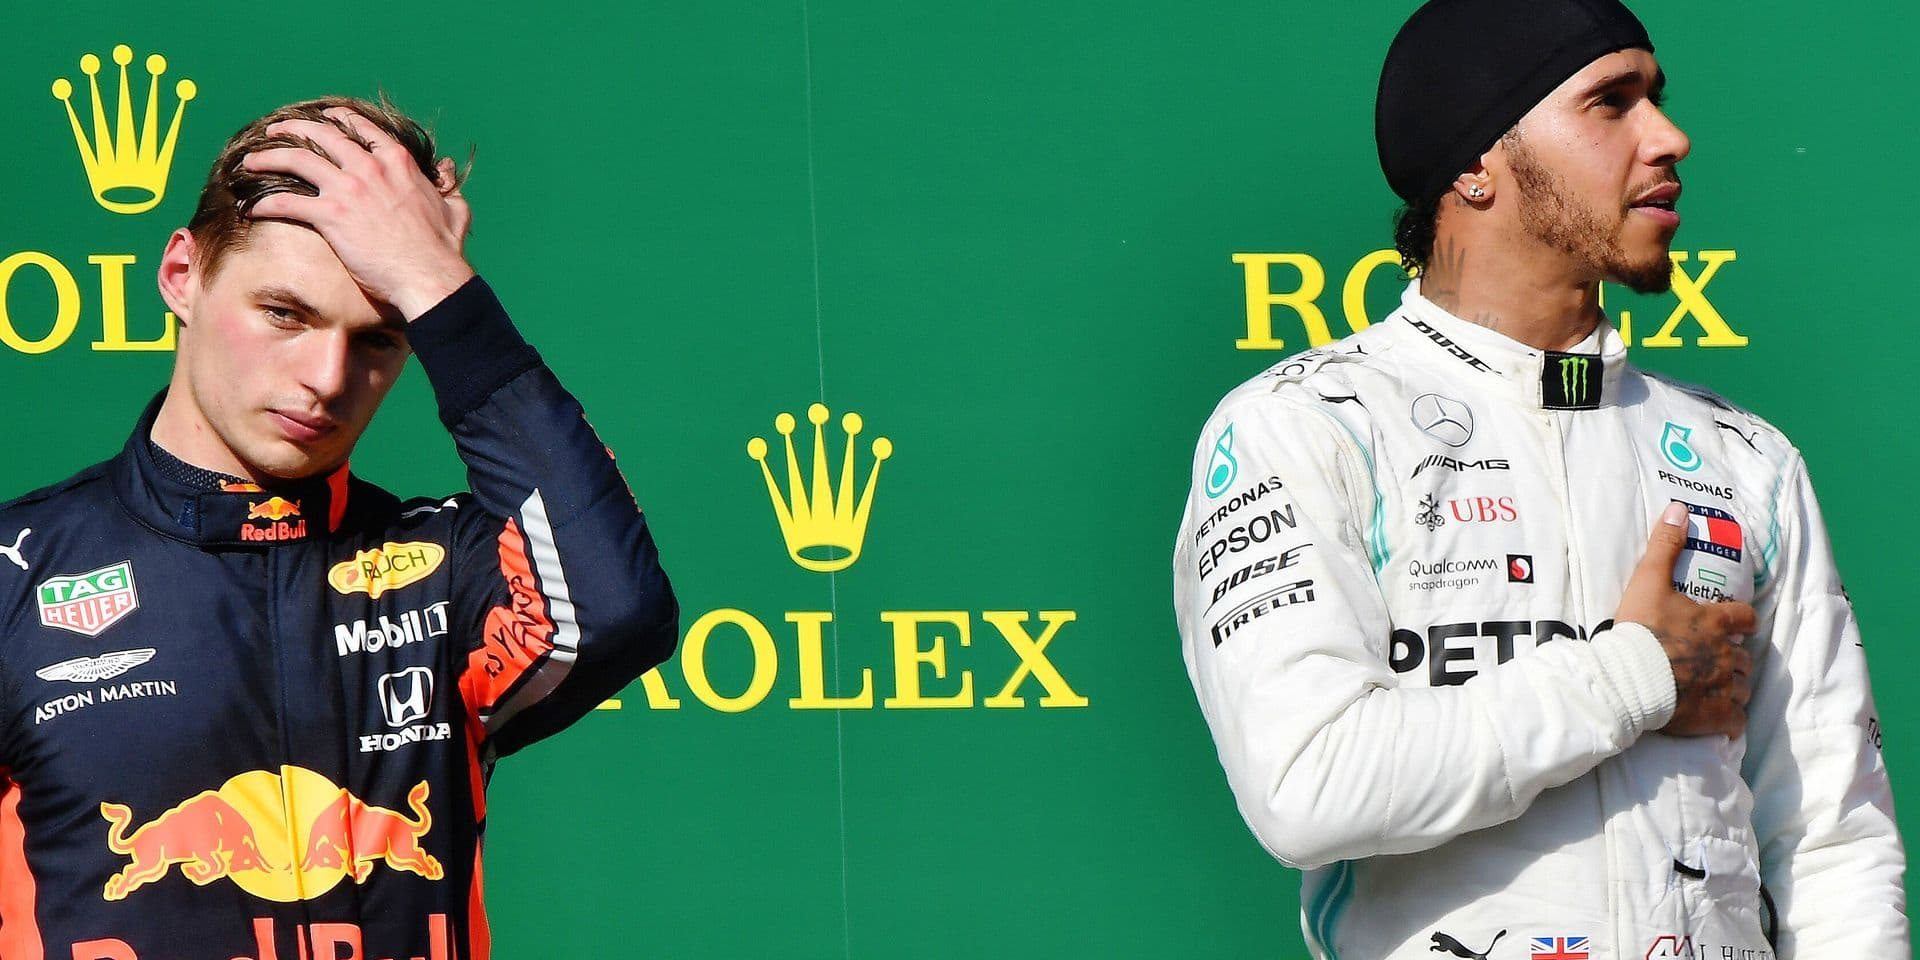 Red Bull's Dutch driver Max Verstappen (L) and Mercedes' British driver Lewis Hamilton stand on the podium after the Formula One Hungarian Grand Prix at the Hungaroring circuit in Mogyorod near Budapest, Hungary, on August 4, 2019. (Photo by Attila KISBENEDEK / AFP)